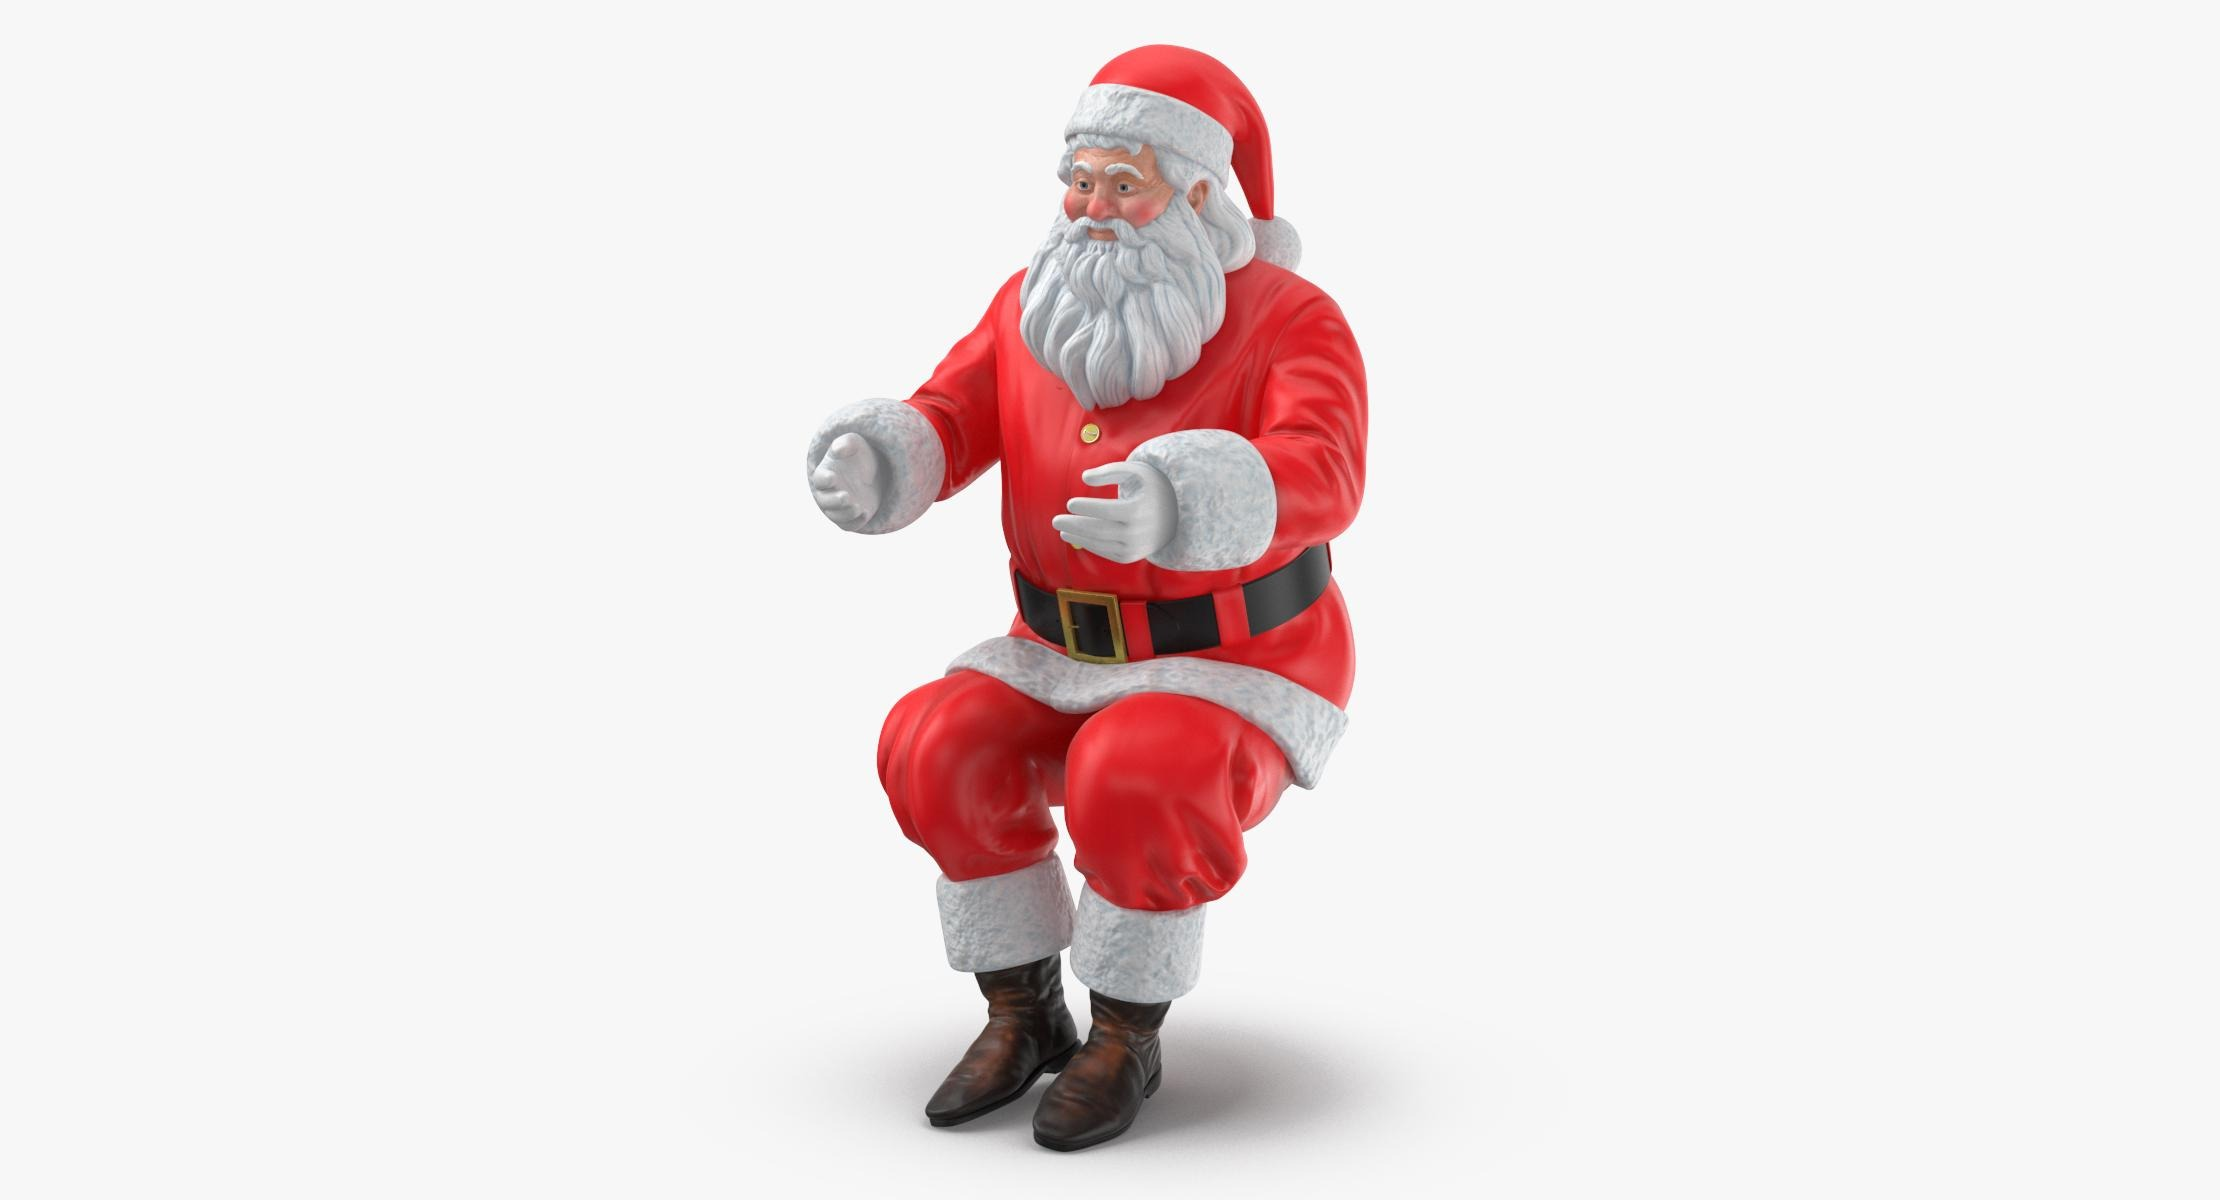 Santa Claus Figure Pose 03 - reel 1